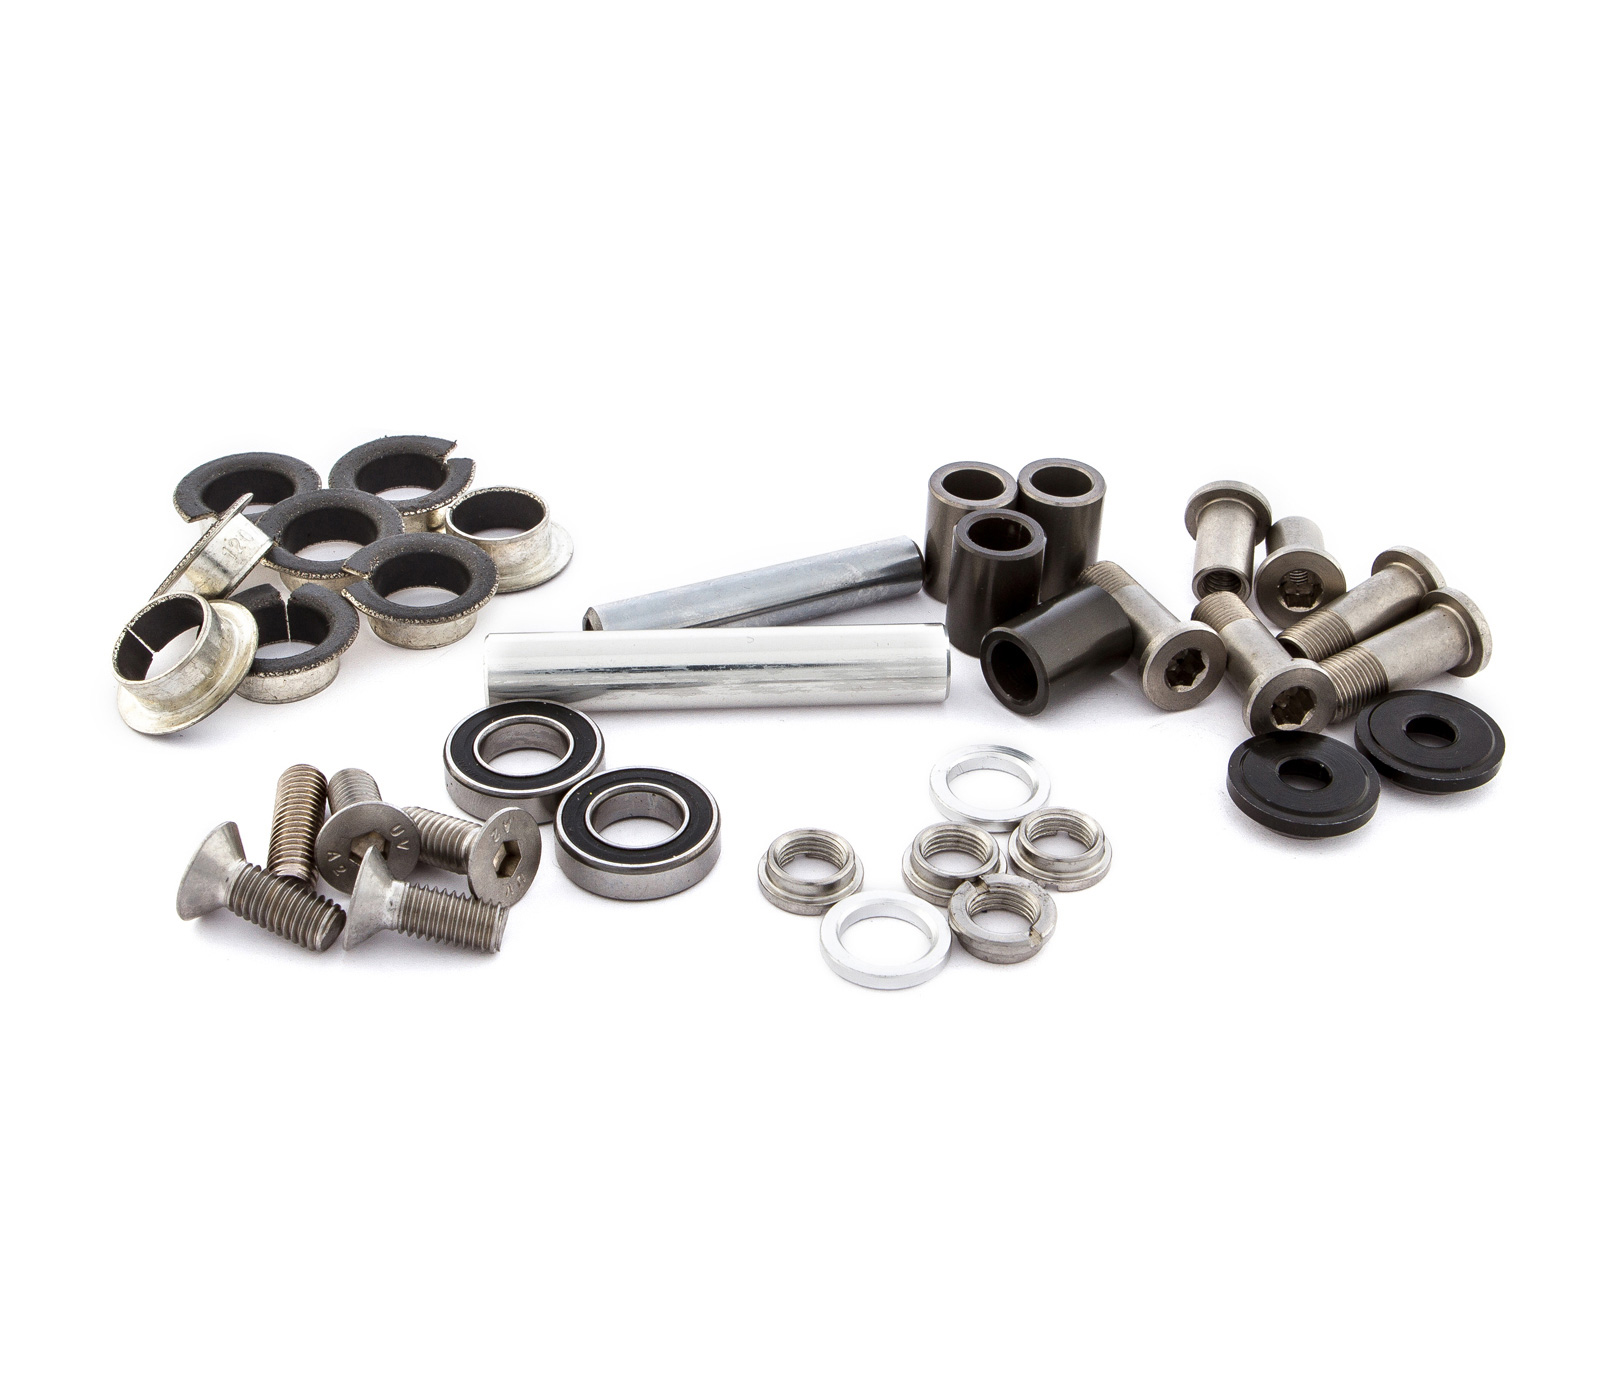 OIZ CARBON UFO REBUILD KIT